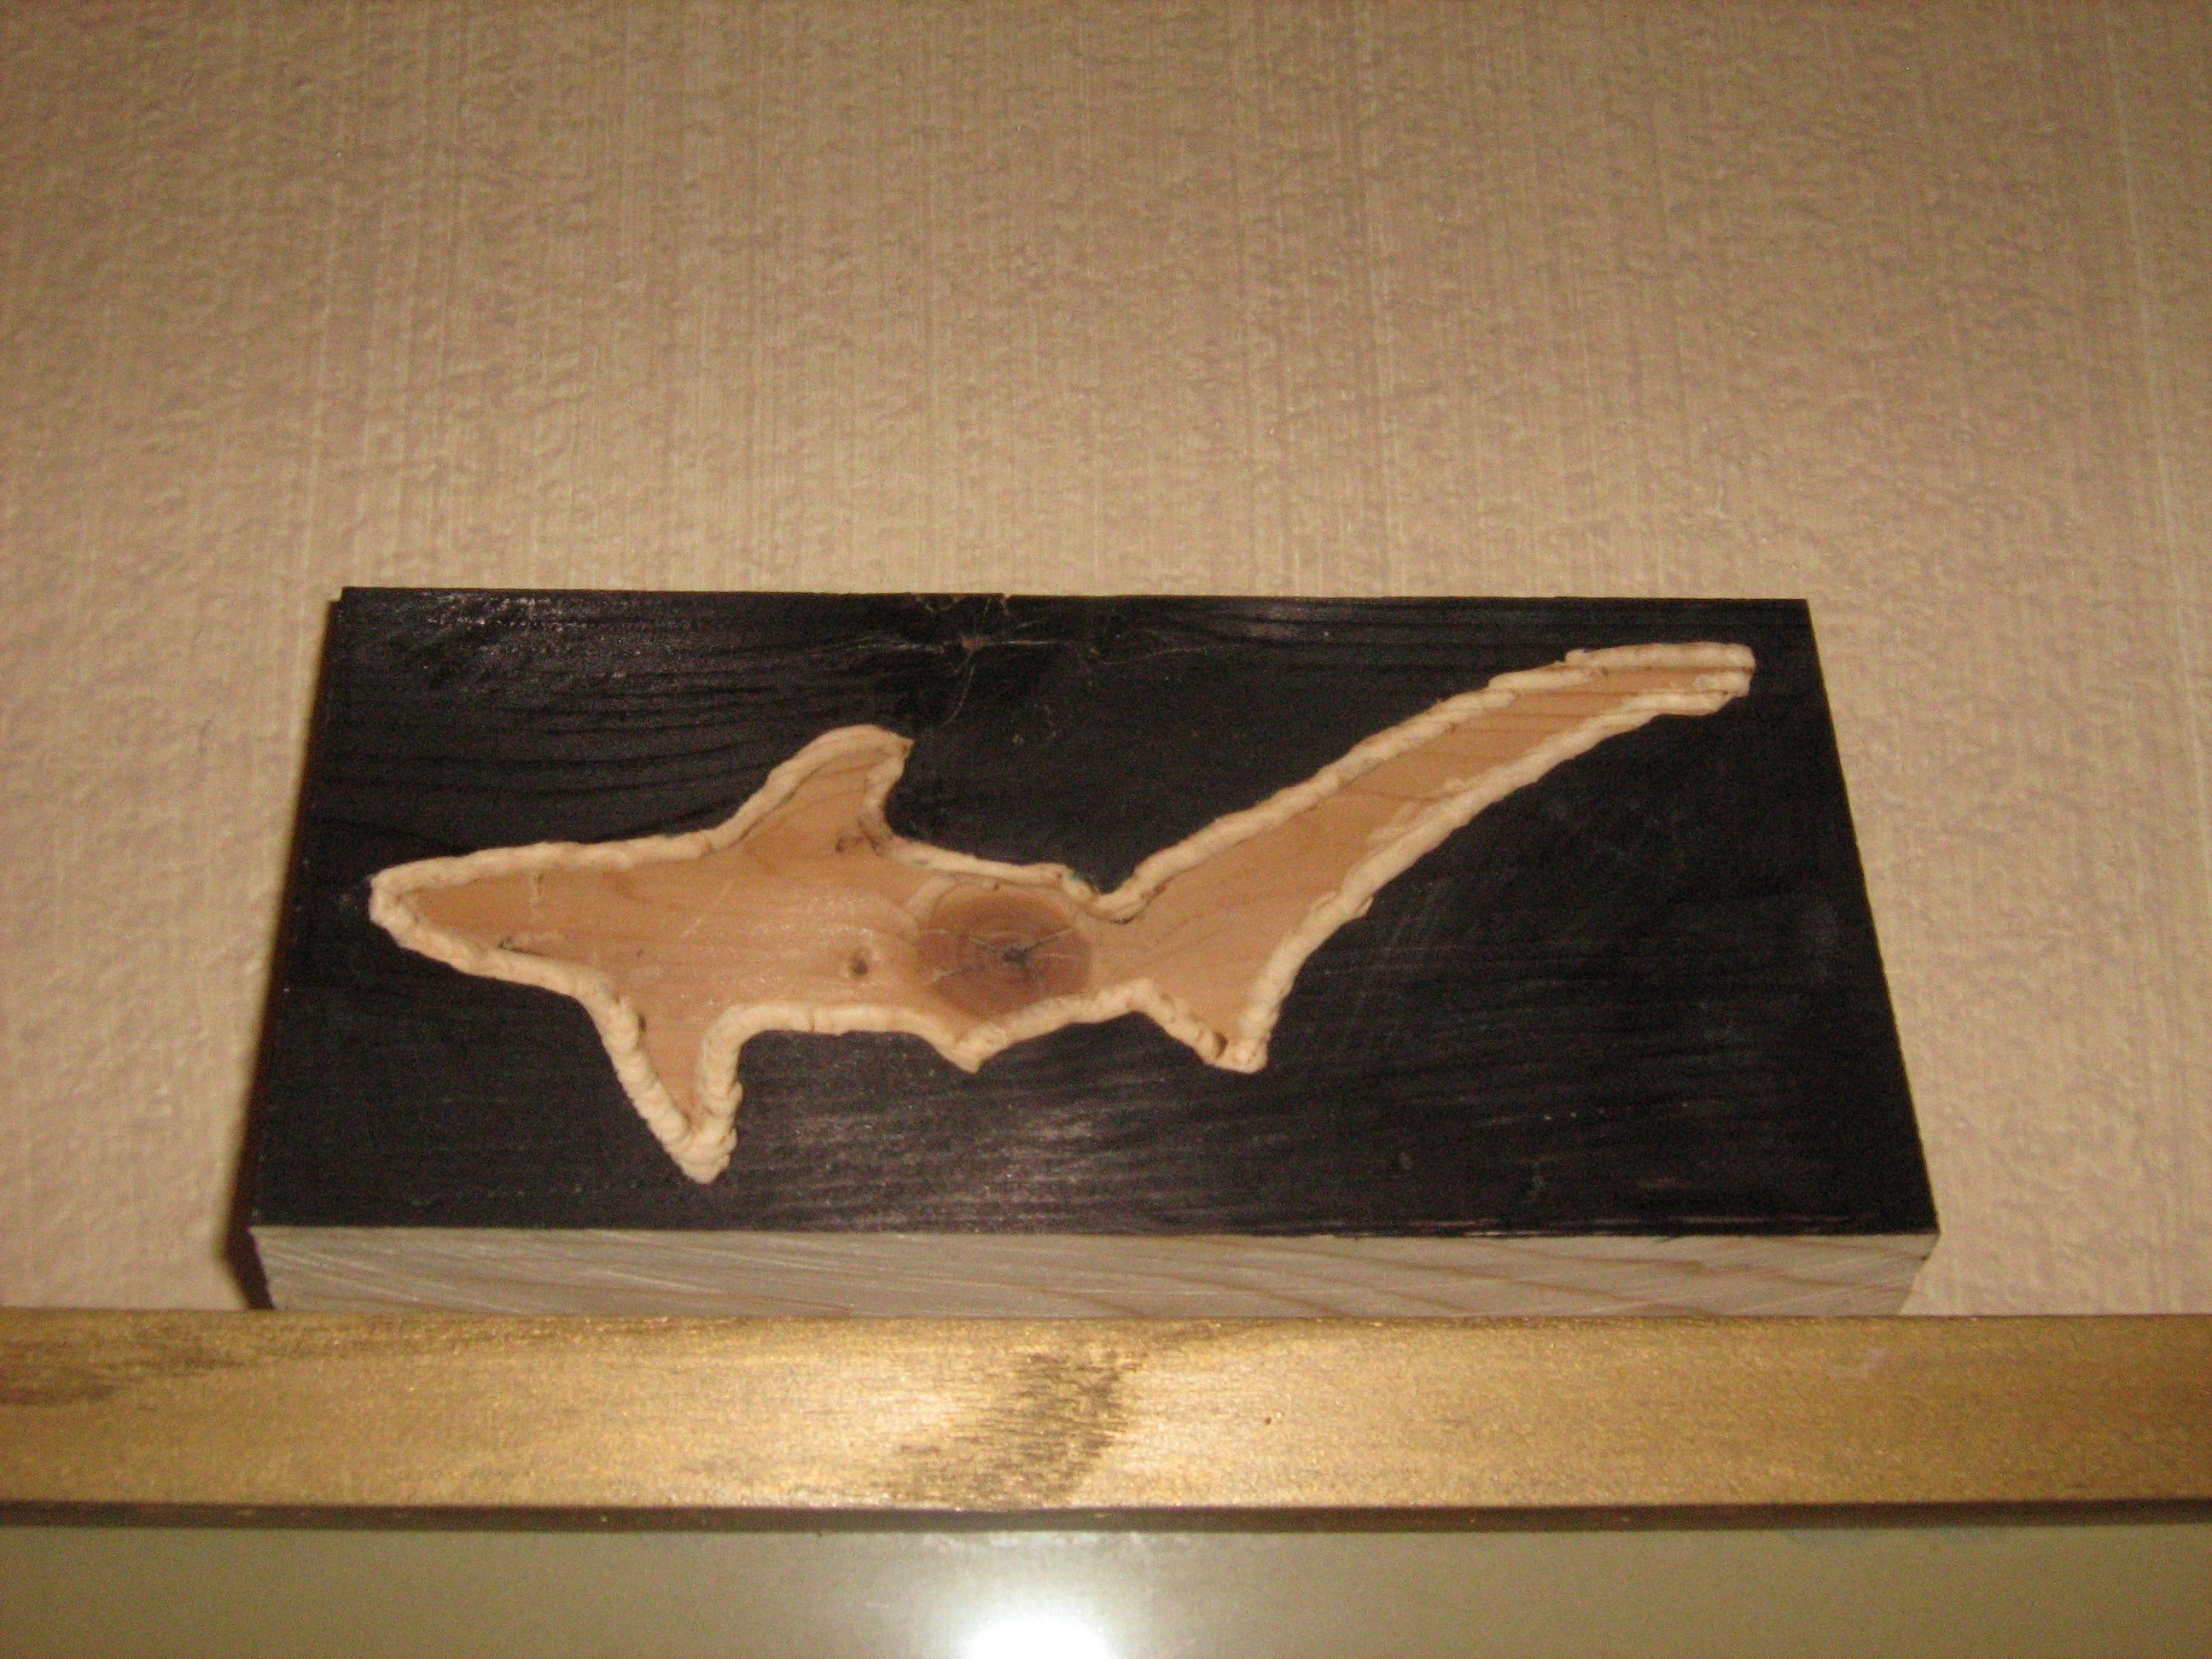 Make Cool Designs In Wood 4 Steps Instructables